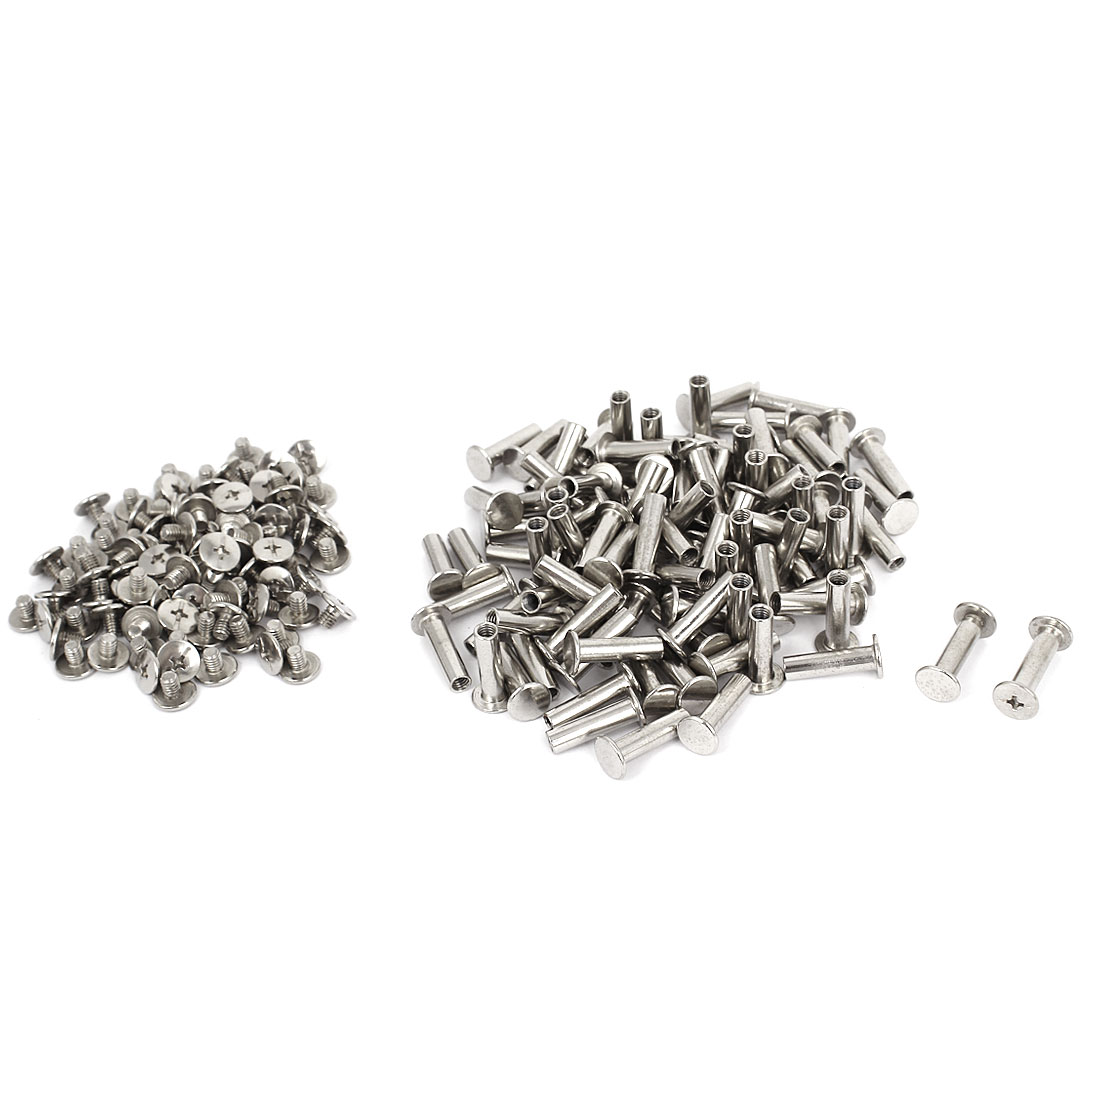 5mmx18mm Nickel Plated Binding Screw Post 100pcs for Scrapbook Photo Albums